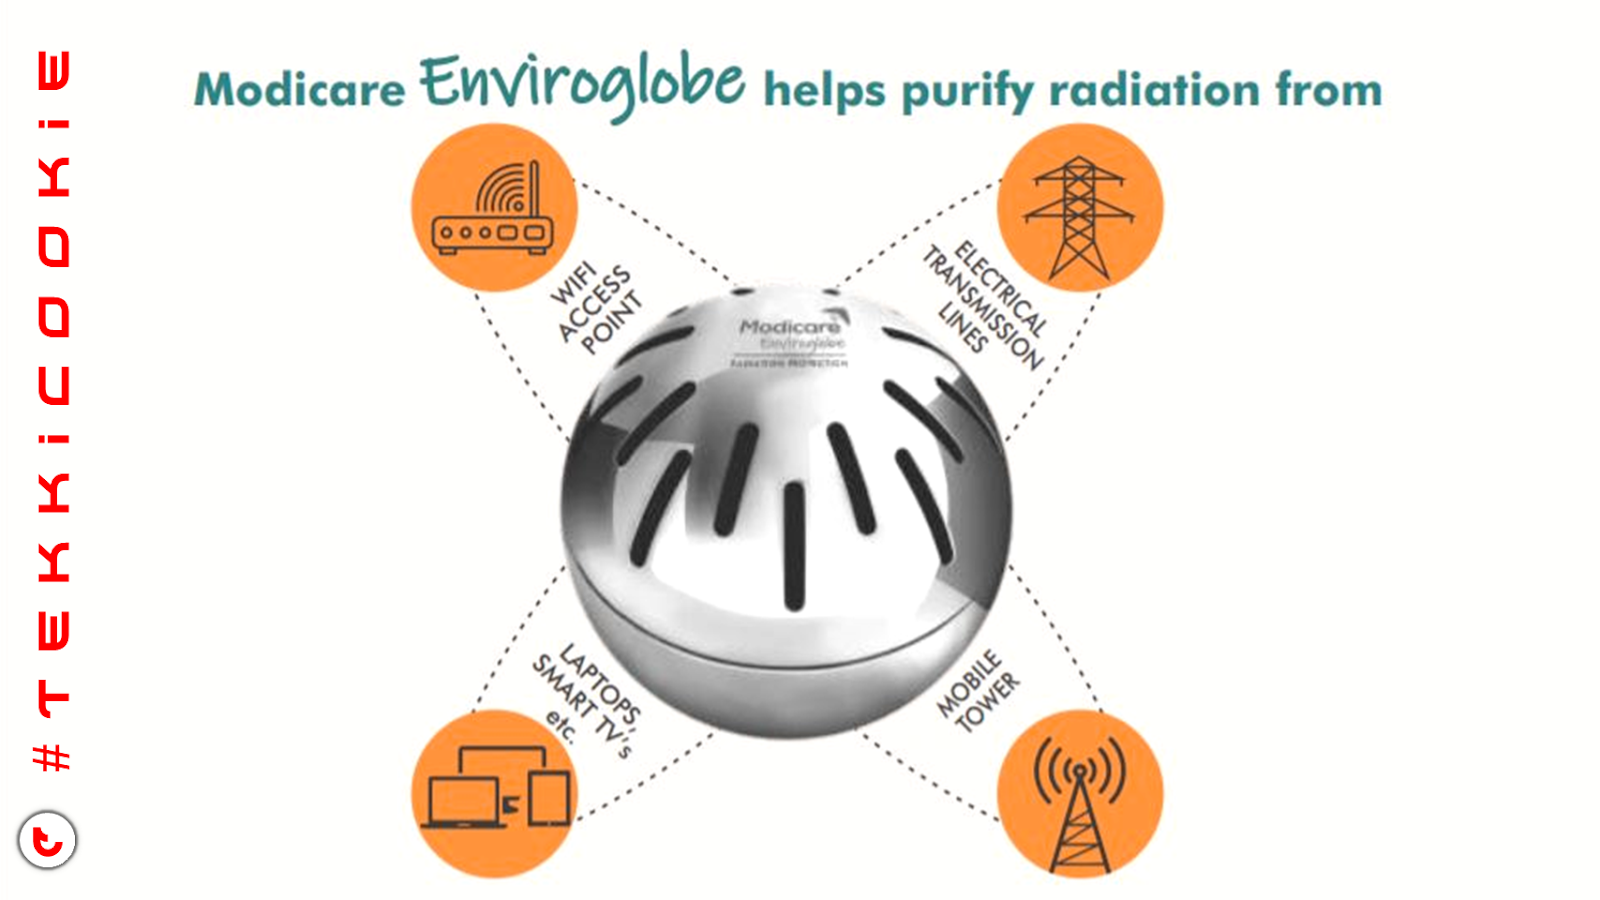 Features-and-Benefits-of-Enviroglobe